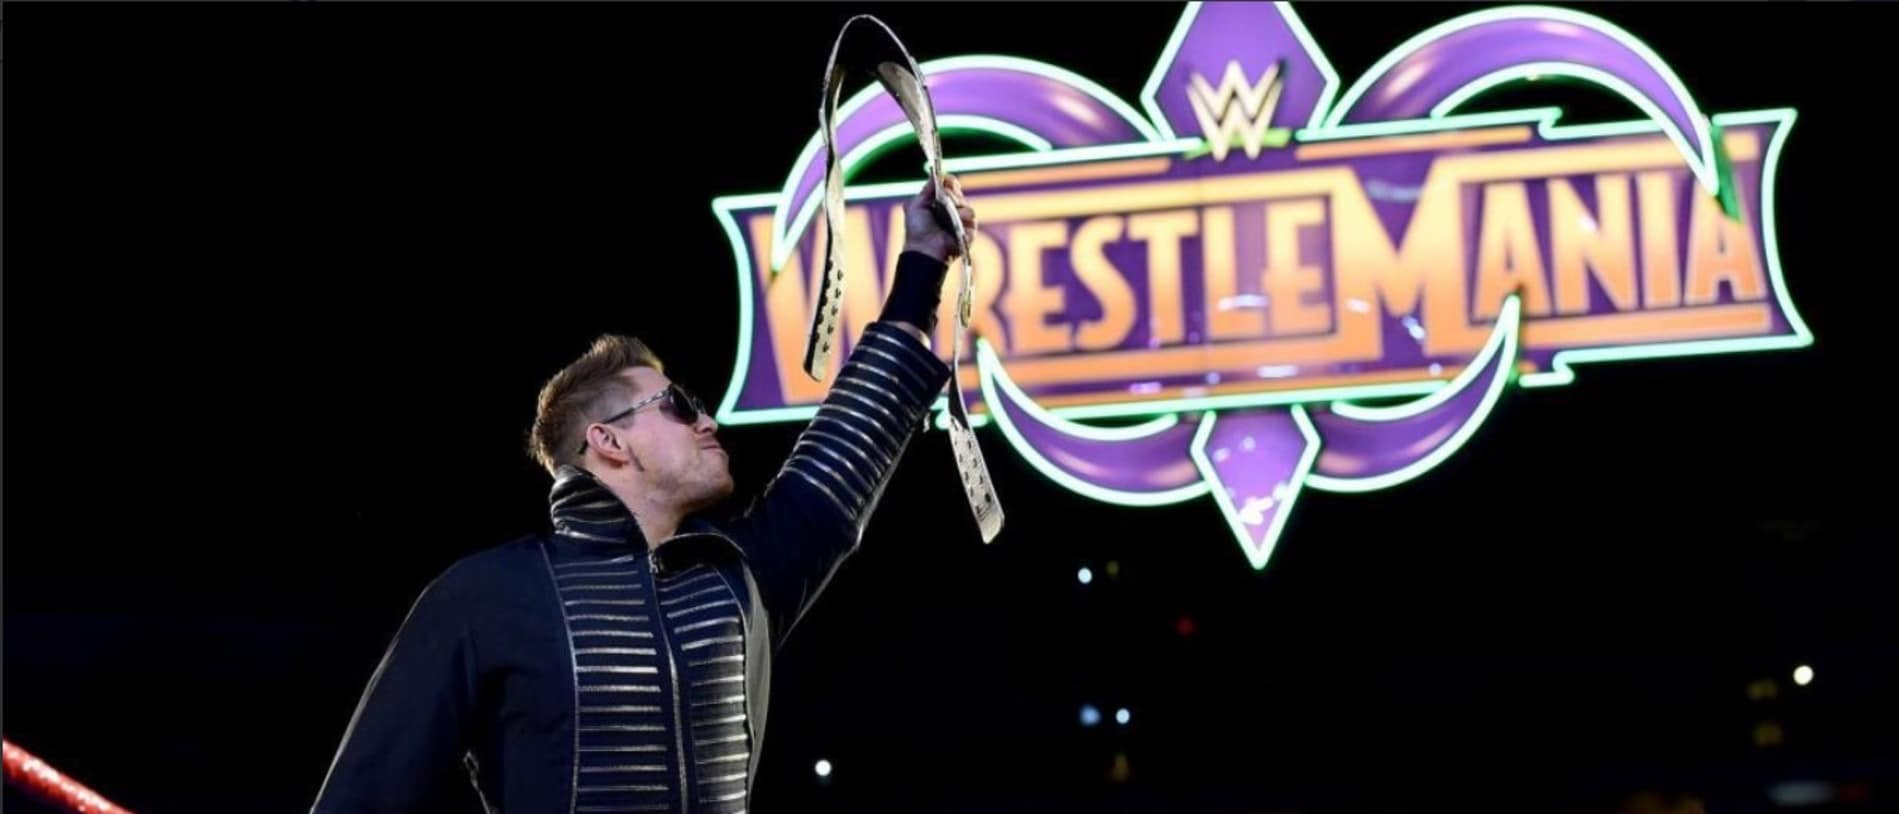 The Miz has been Intercontinental Champion for a LONG time.